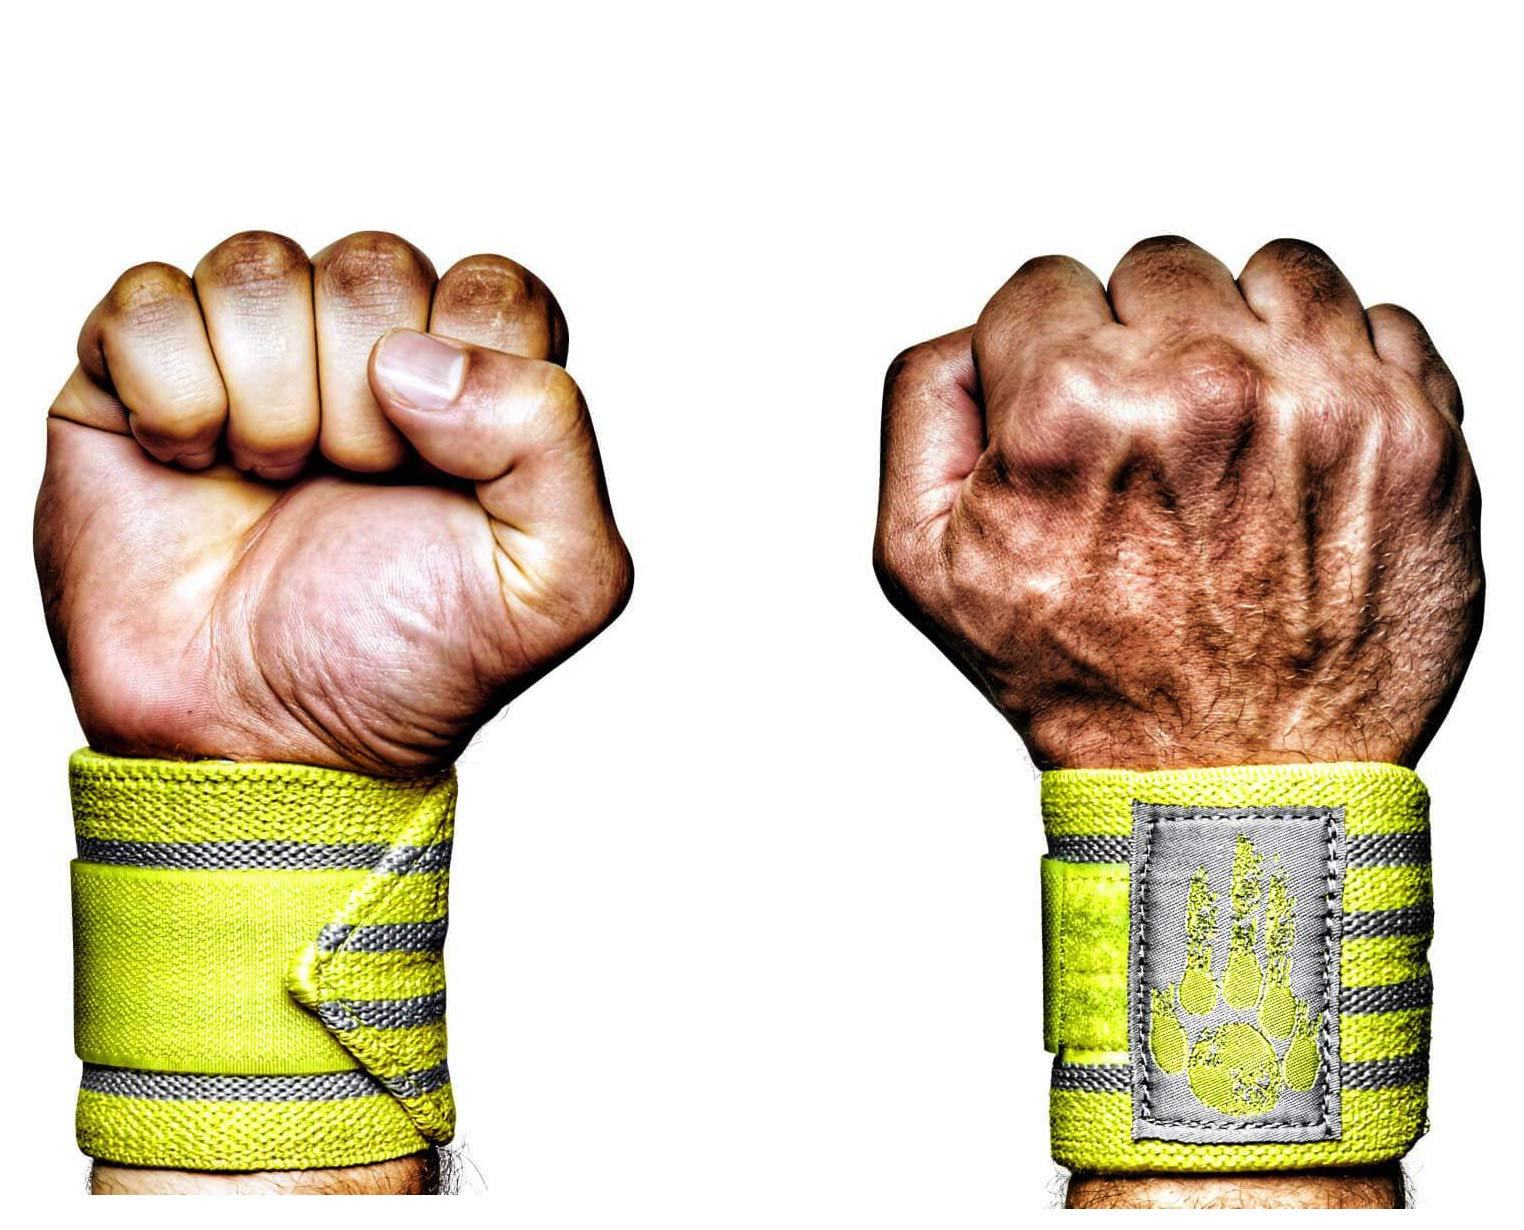 MANIMAL: The Best Weightlifting Straps with Superior Wrist Support, 1 Wrist Wraps Trusted by Professional Powerlifting, Strongman, Crossfit and Olympic Athletes - Radioactive